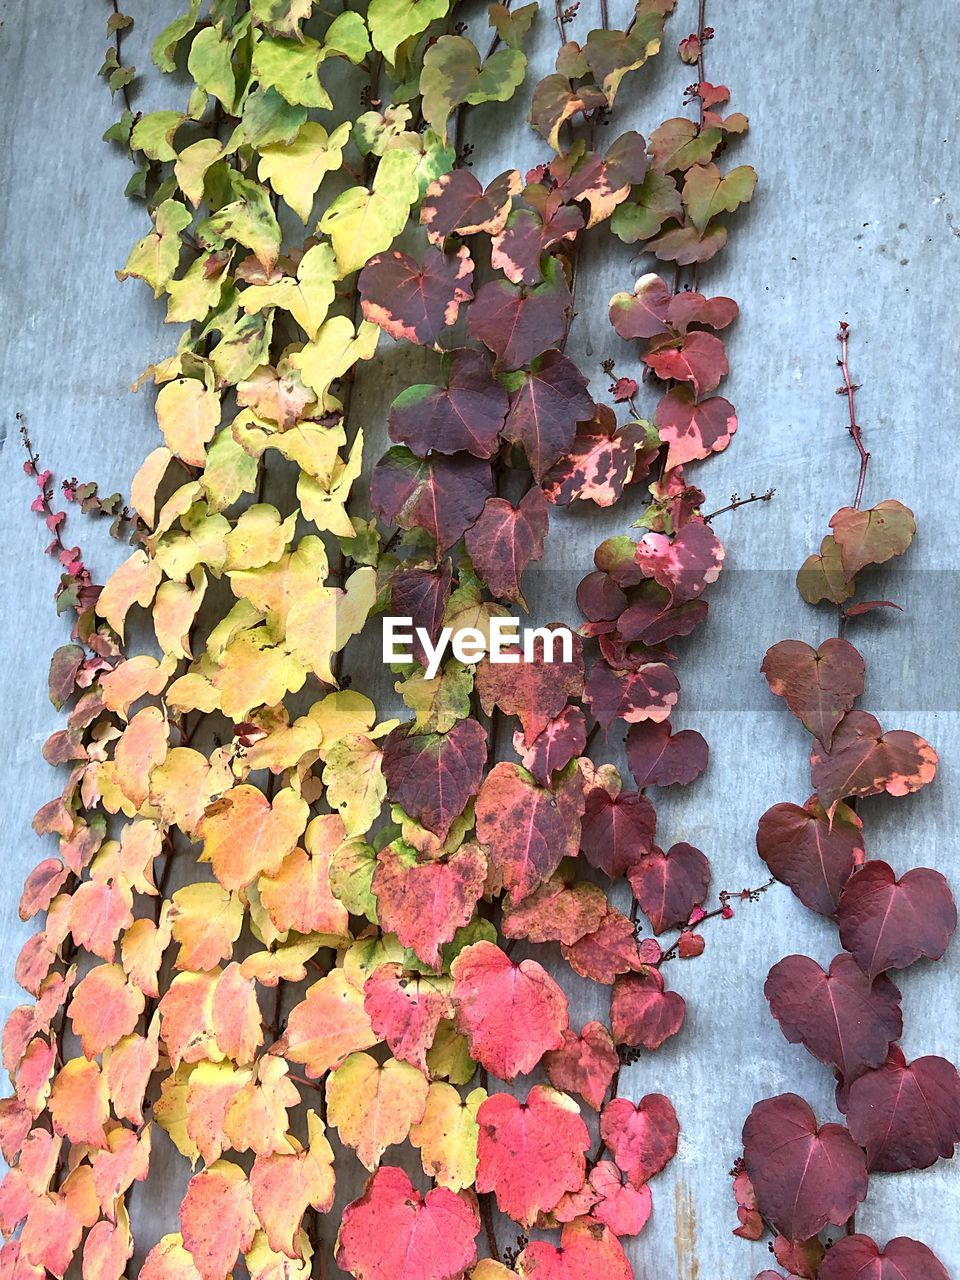 leaf, plant part, autumn, wall - building feature, no people, change, day, ivy, plant, nature, beauty in nature, close-up, multi colored, creeper plant, leaves, outdoors, growth, vulnerability, wall, dry, purple